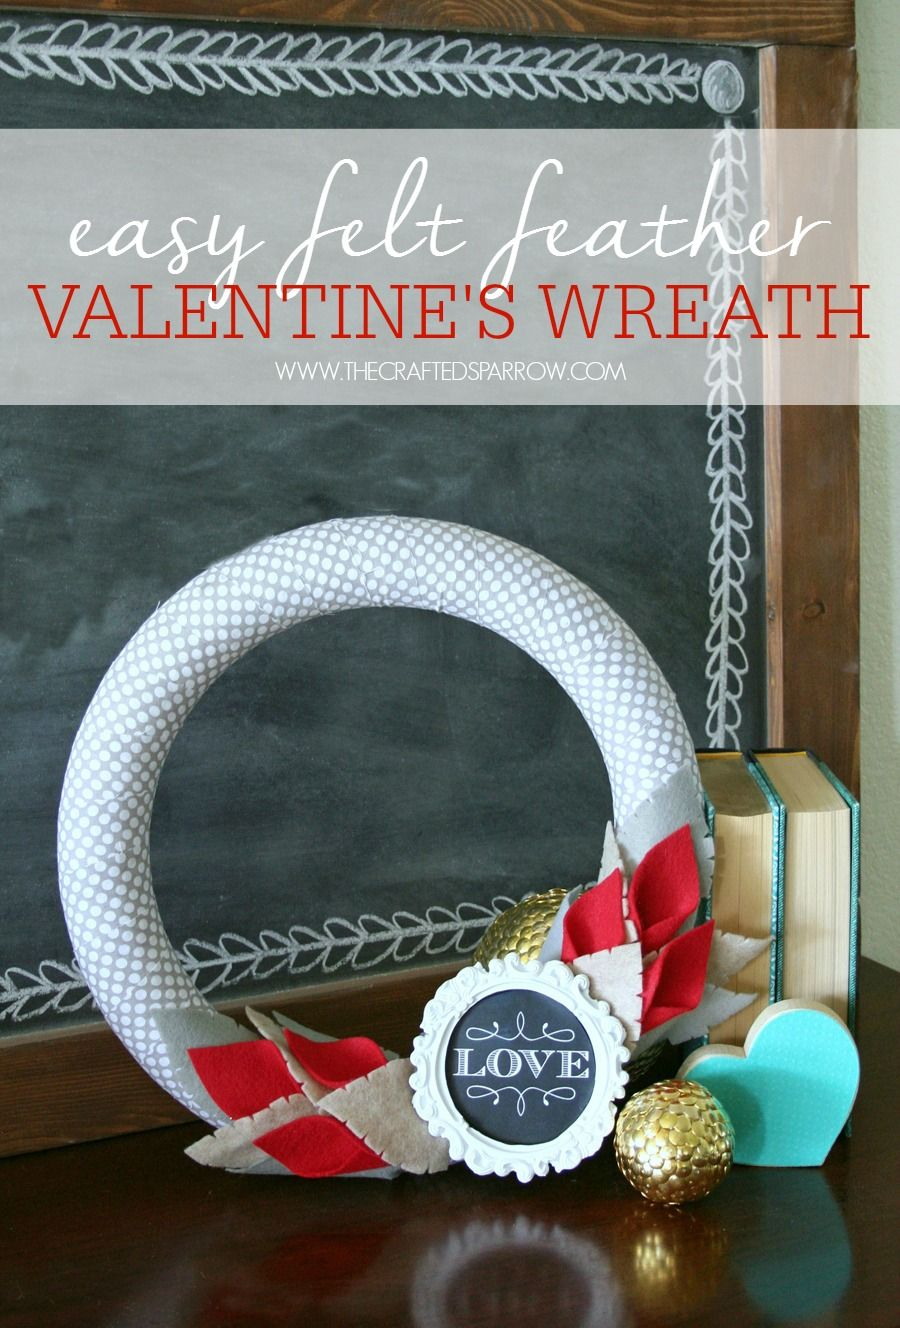 Make an Easy Felt Feather Valentine's Wreath in about 30 minutes with about  $10 in supplies.